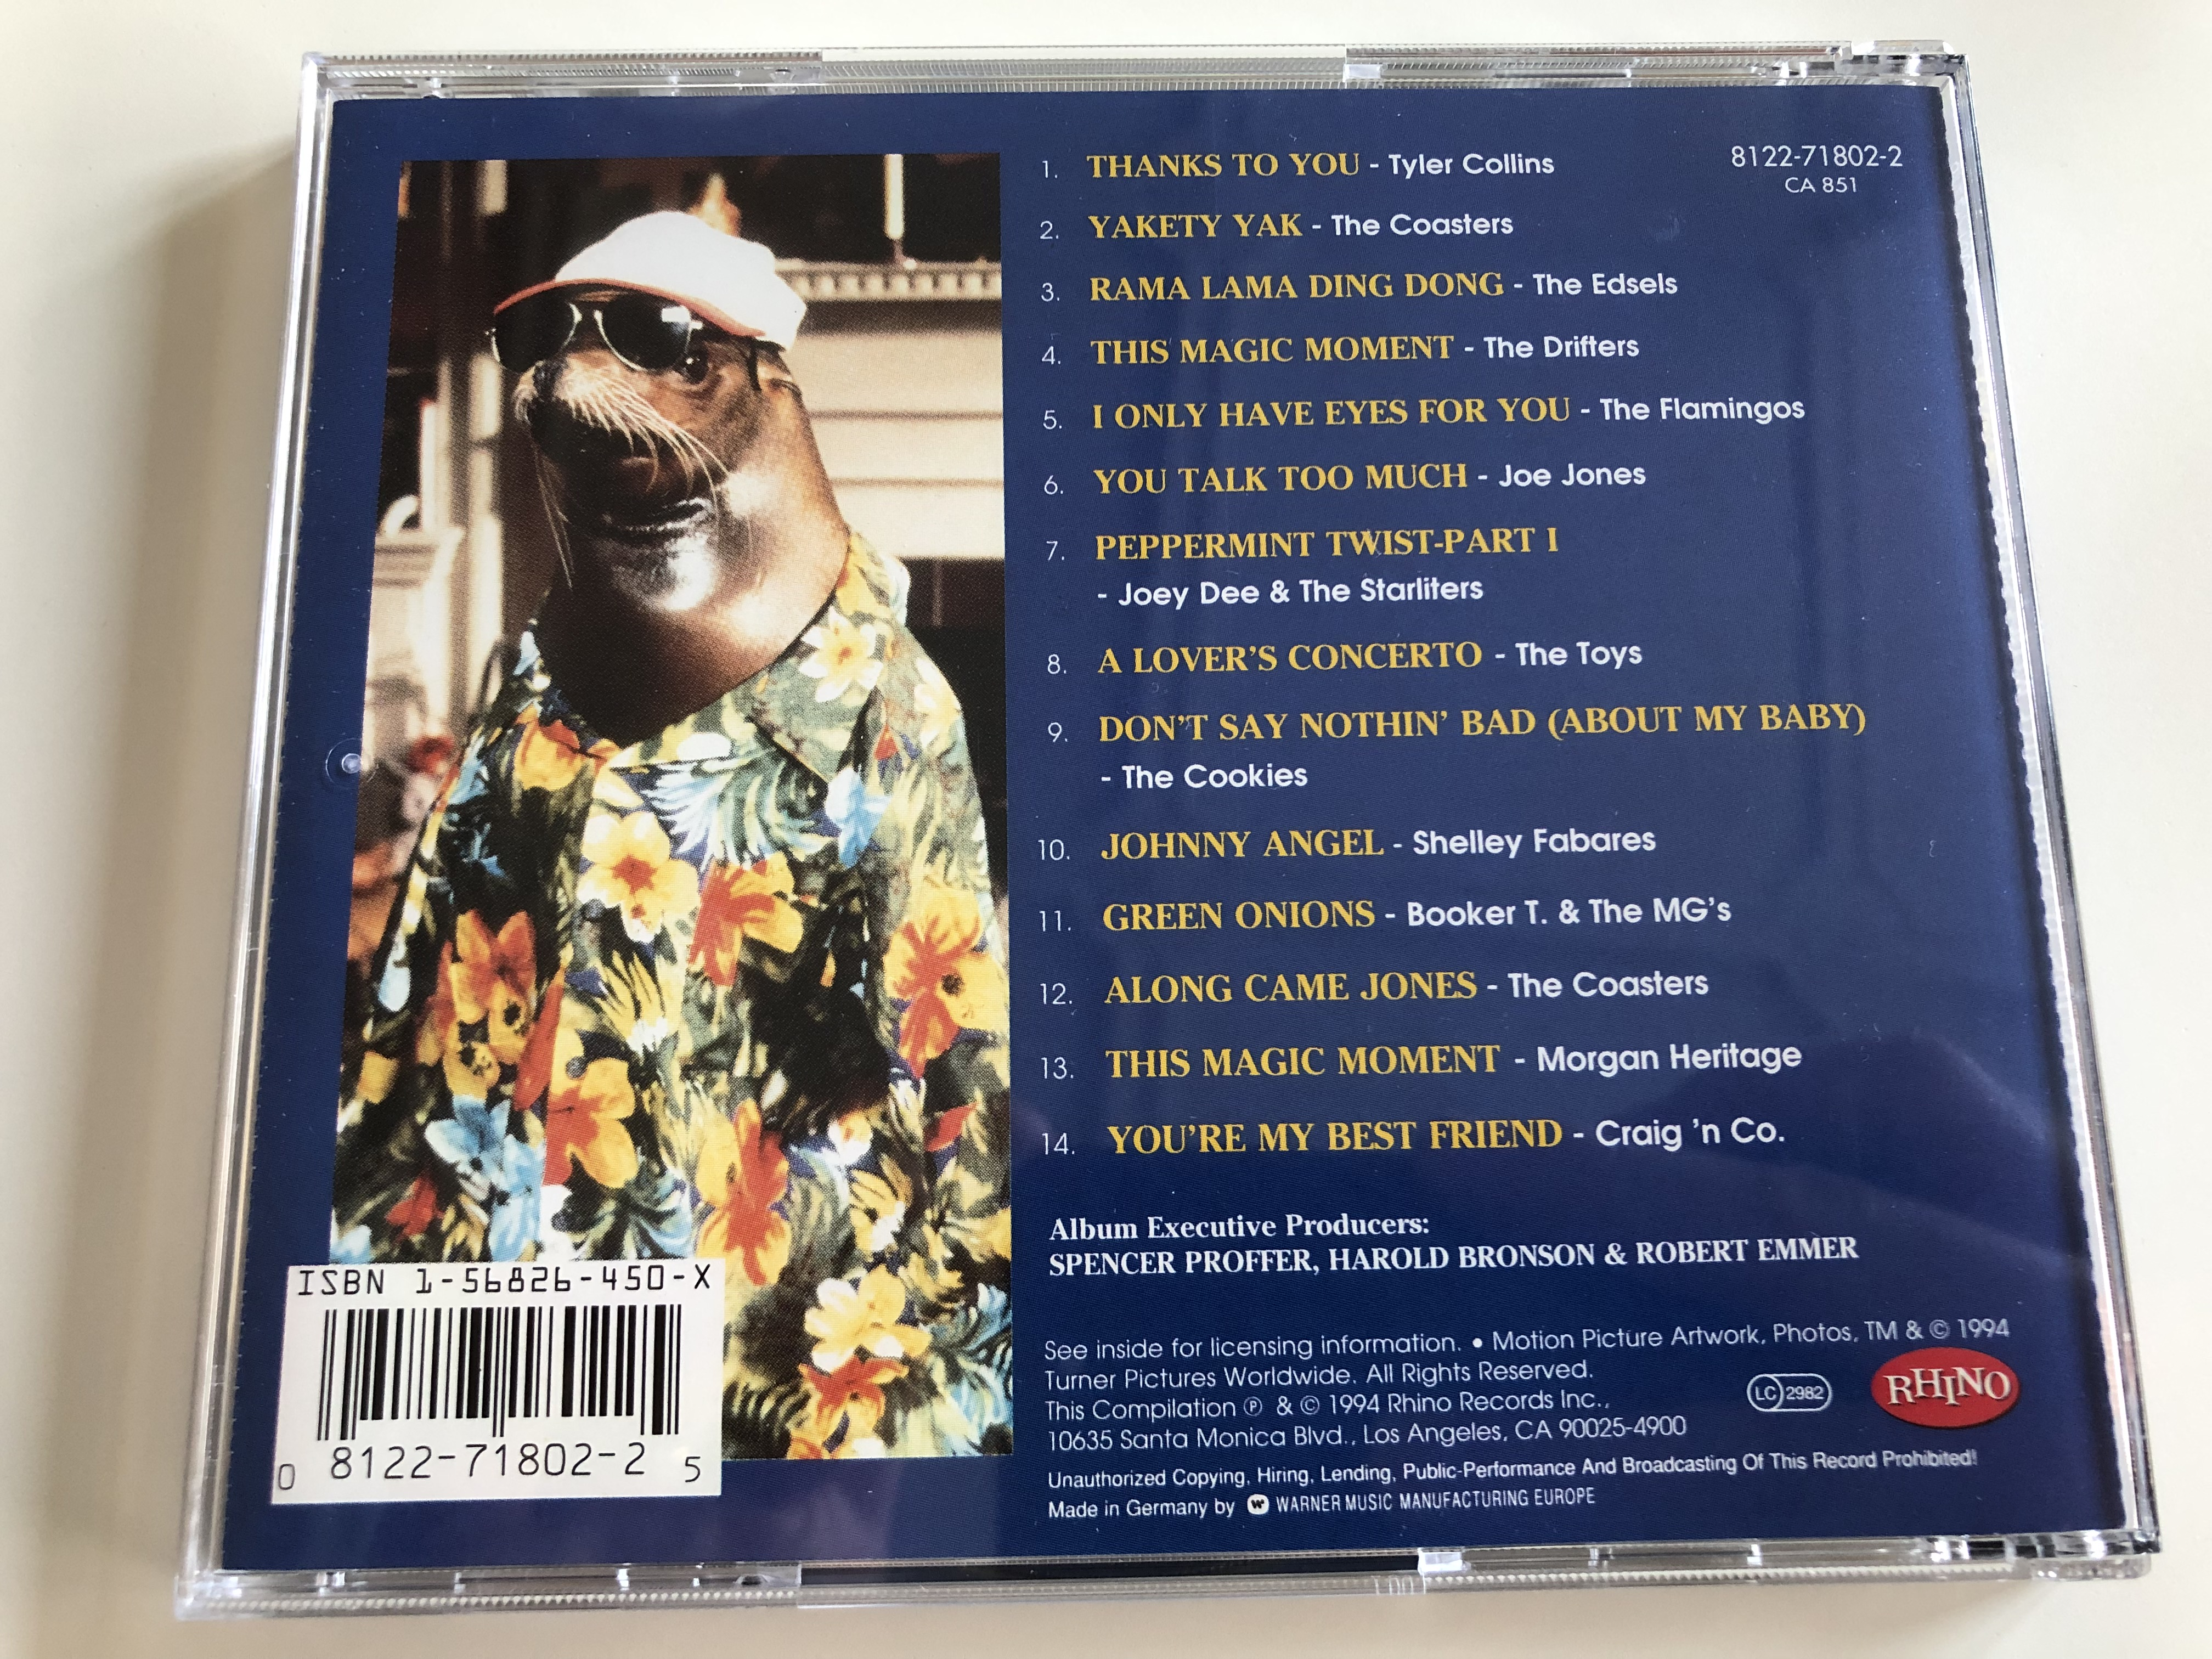 andre-based-on-a-true-story-songs-from-the-original-soundtrack-the-greatest-adventure-is-finding-your-way-home-audio-cd-1994-8122-71802-2-ca-851-6-.jpg